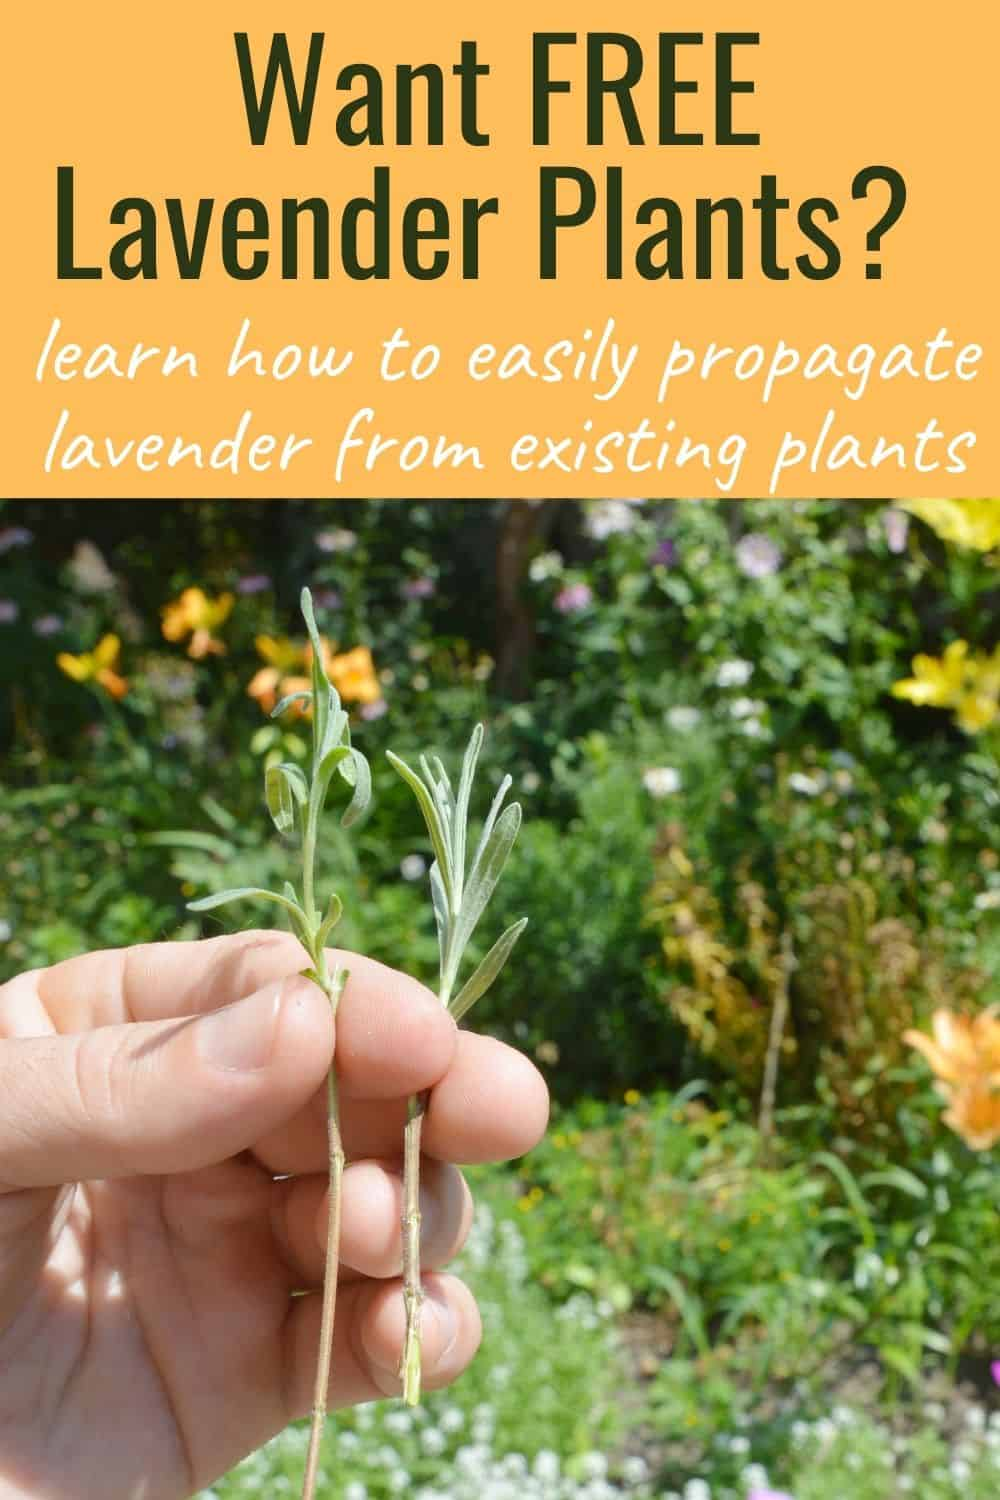 Want free lavender plants? Learn how to easily propagate lavender from existing plants